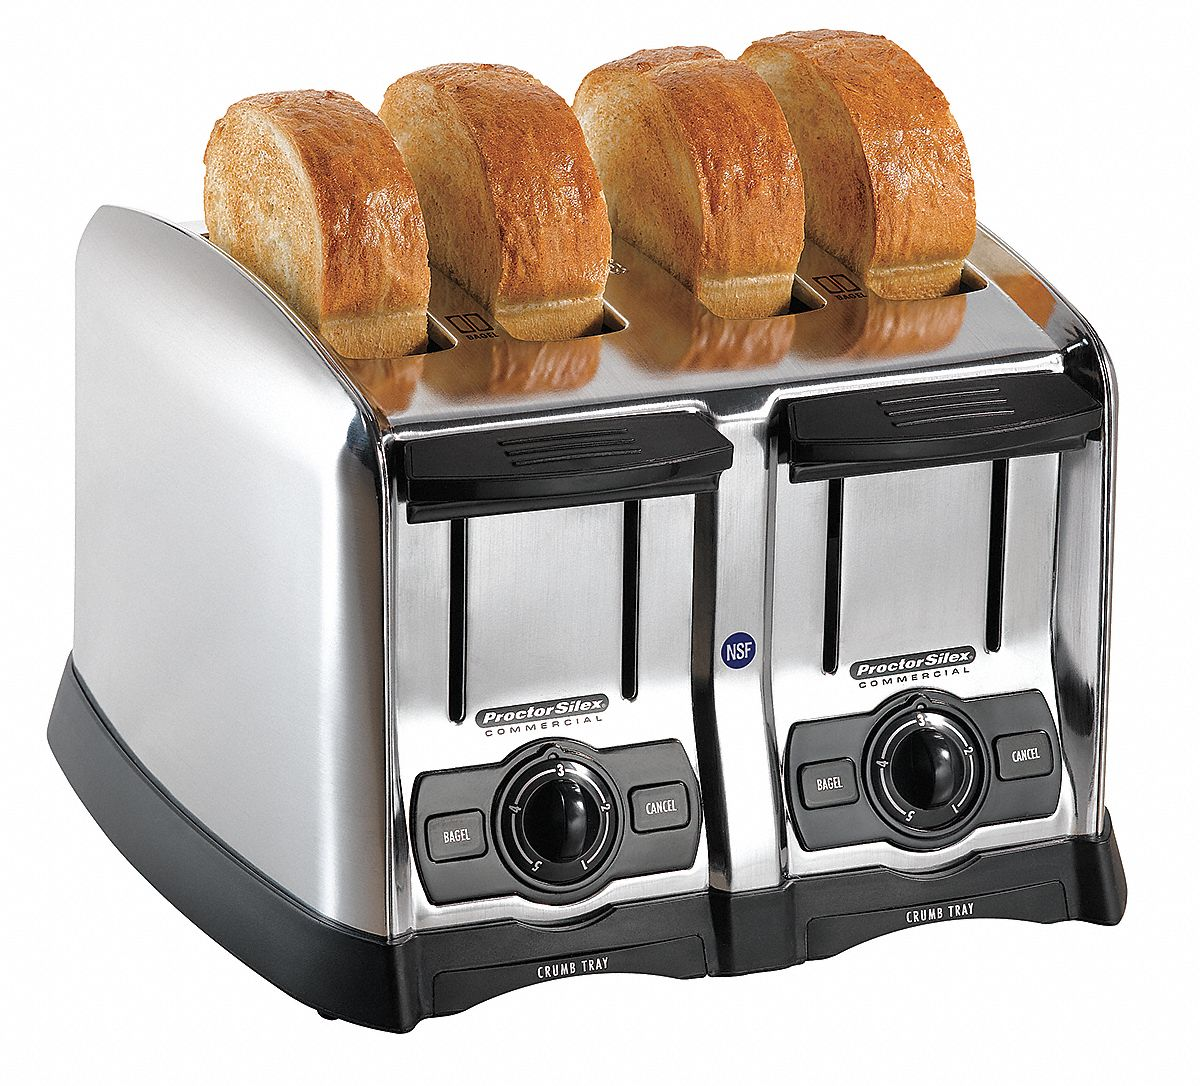 htm commercial p light waring toaster duty